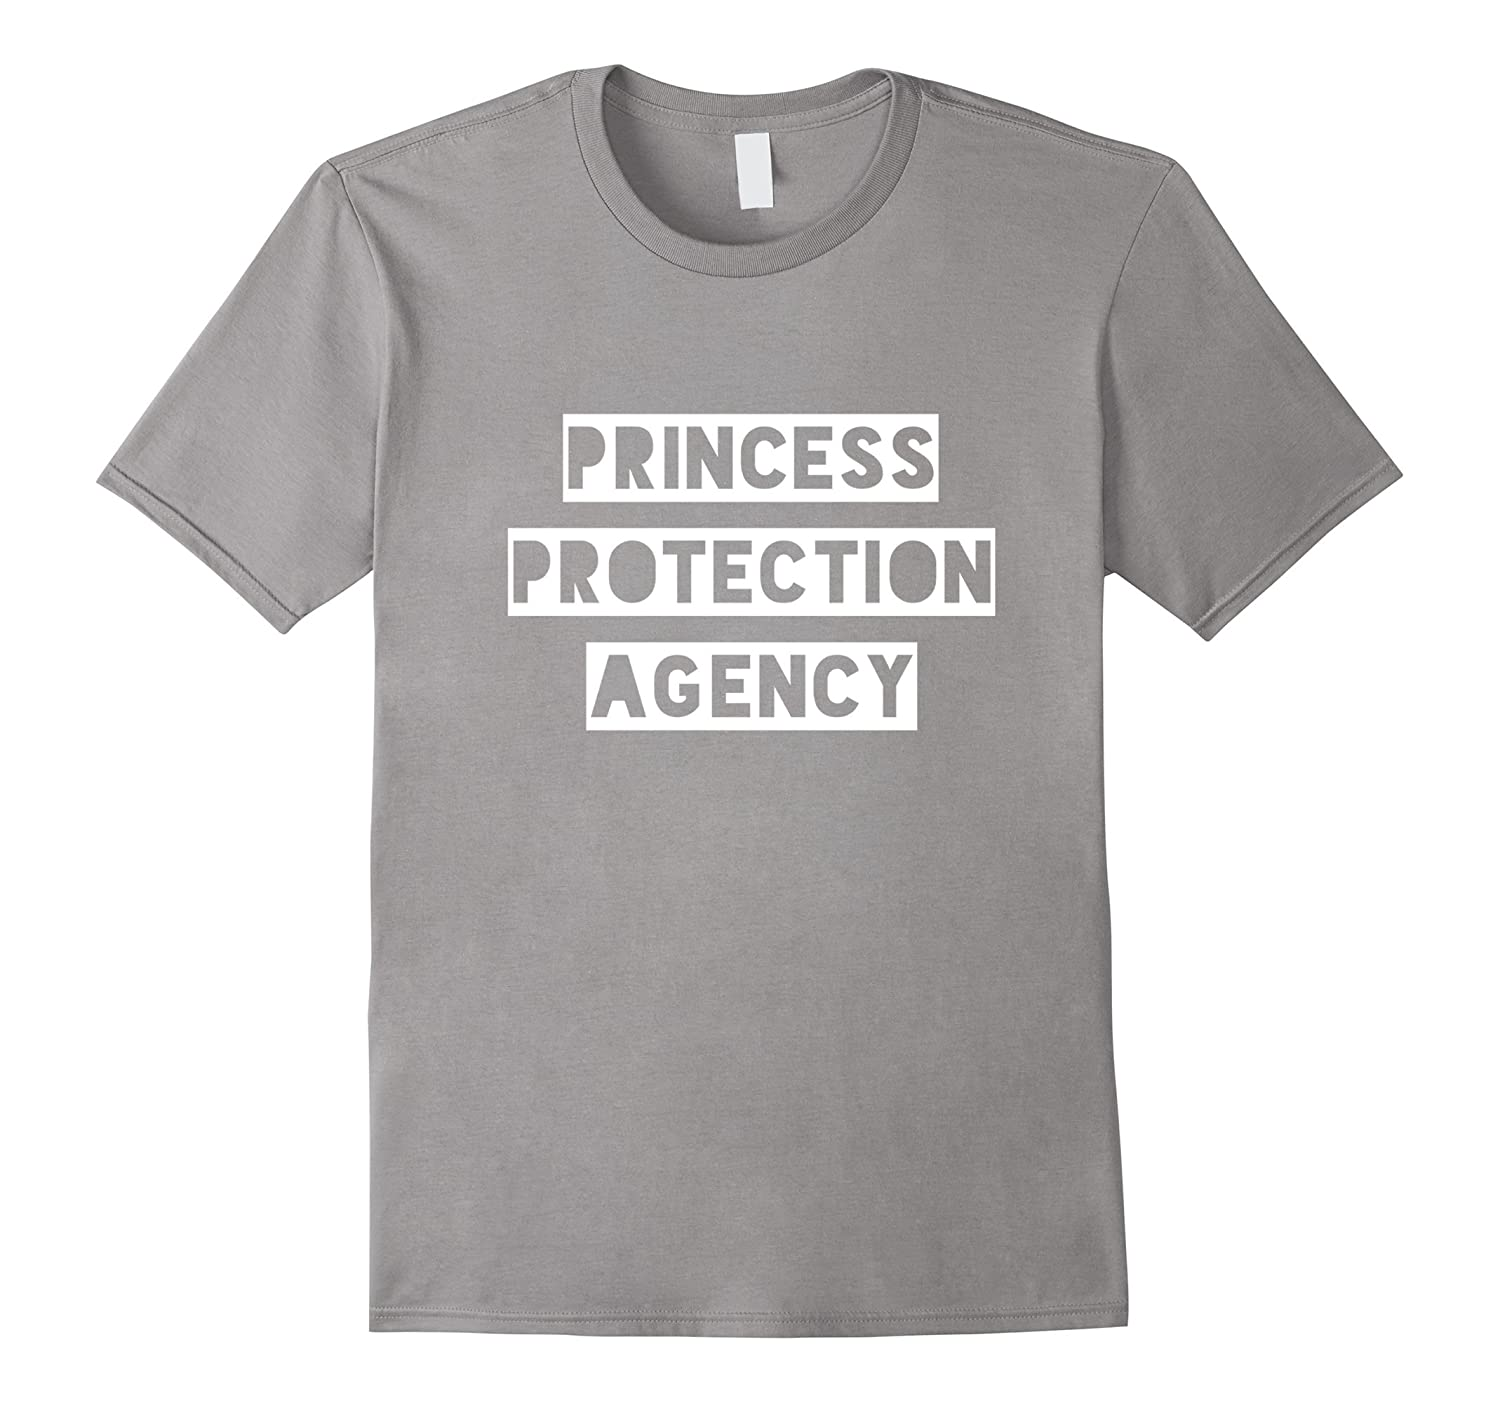 Princess Protection Agency best father daughter gift t-shirt